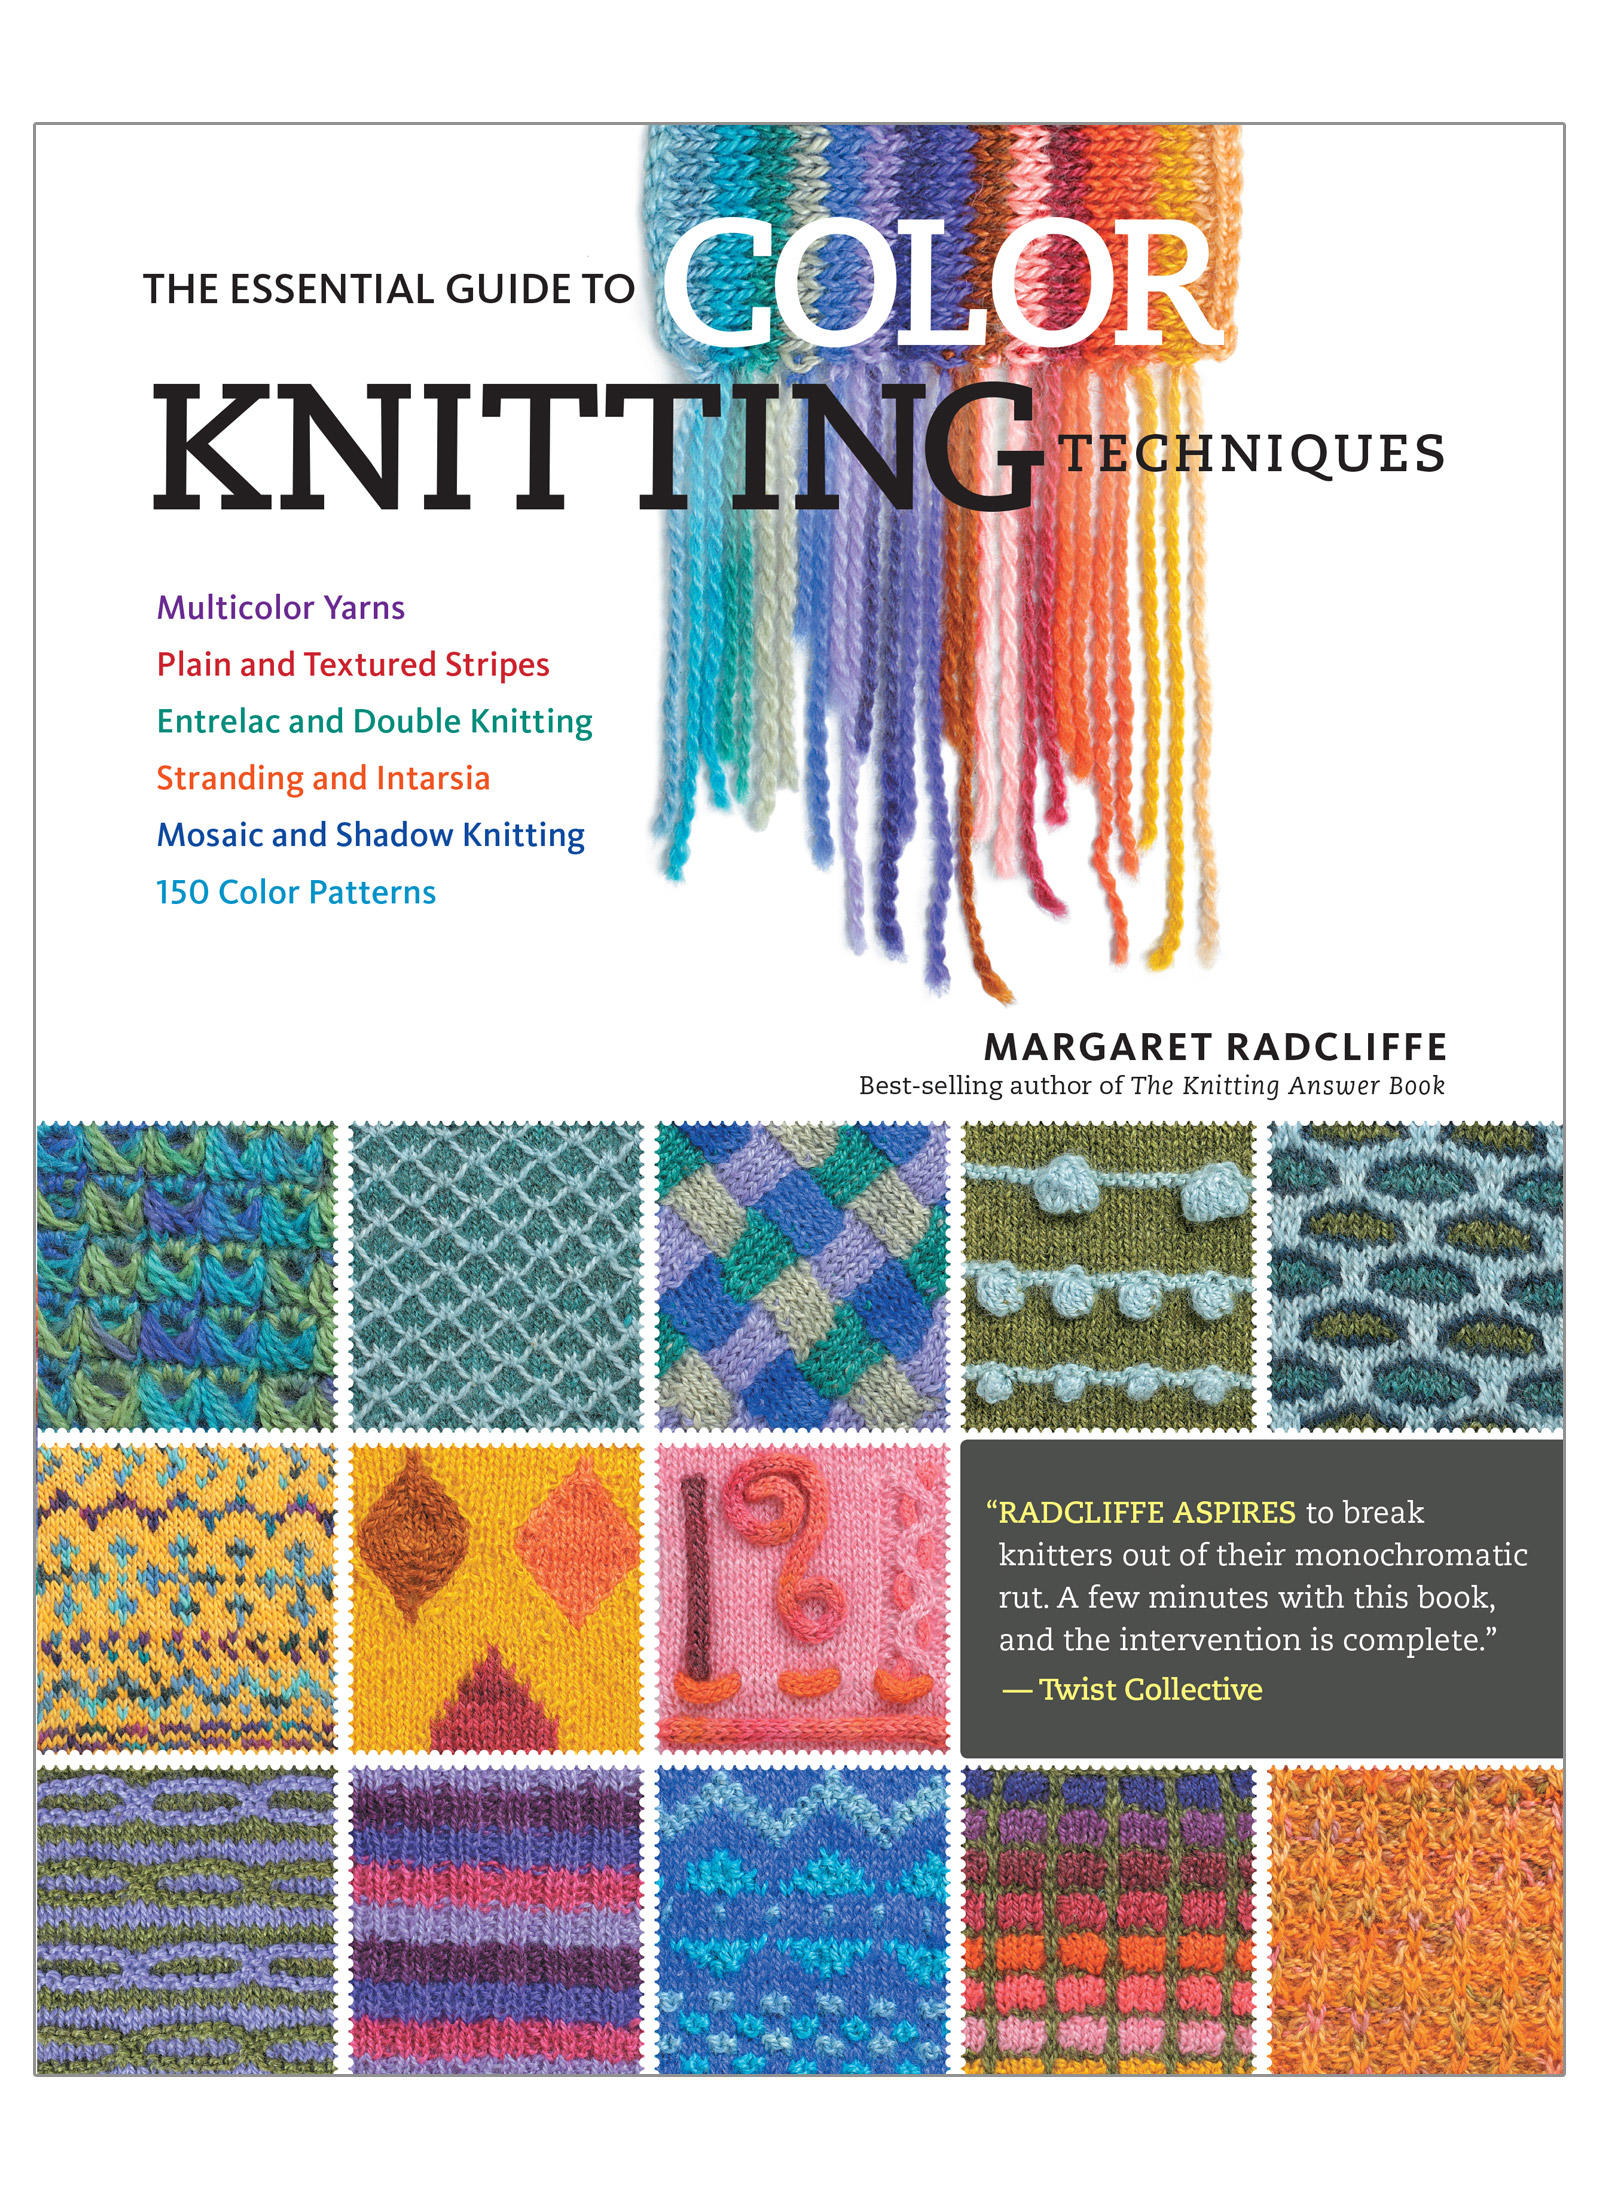 The Essential Guide to Color Knitting Techniques Soft Cover